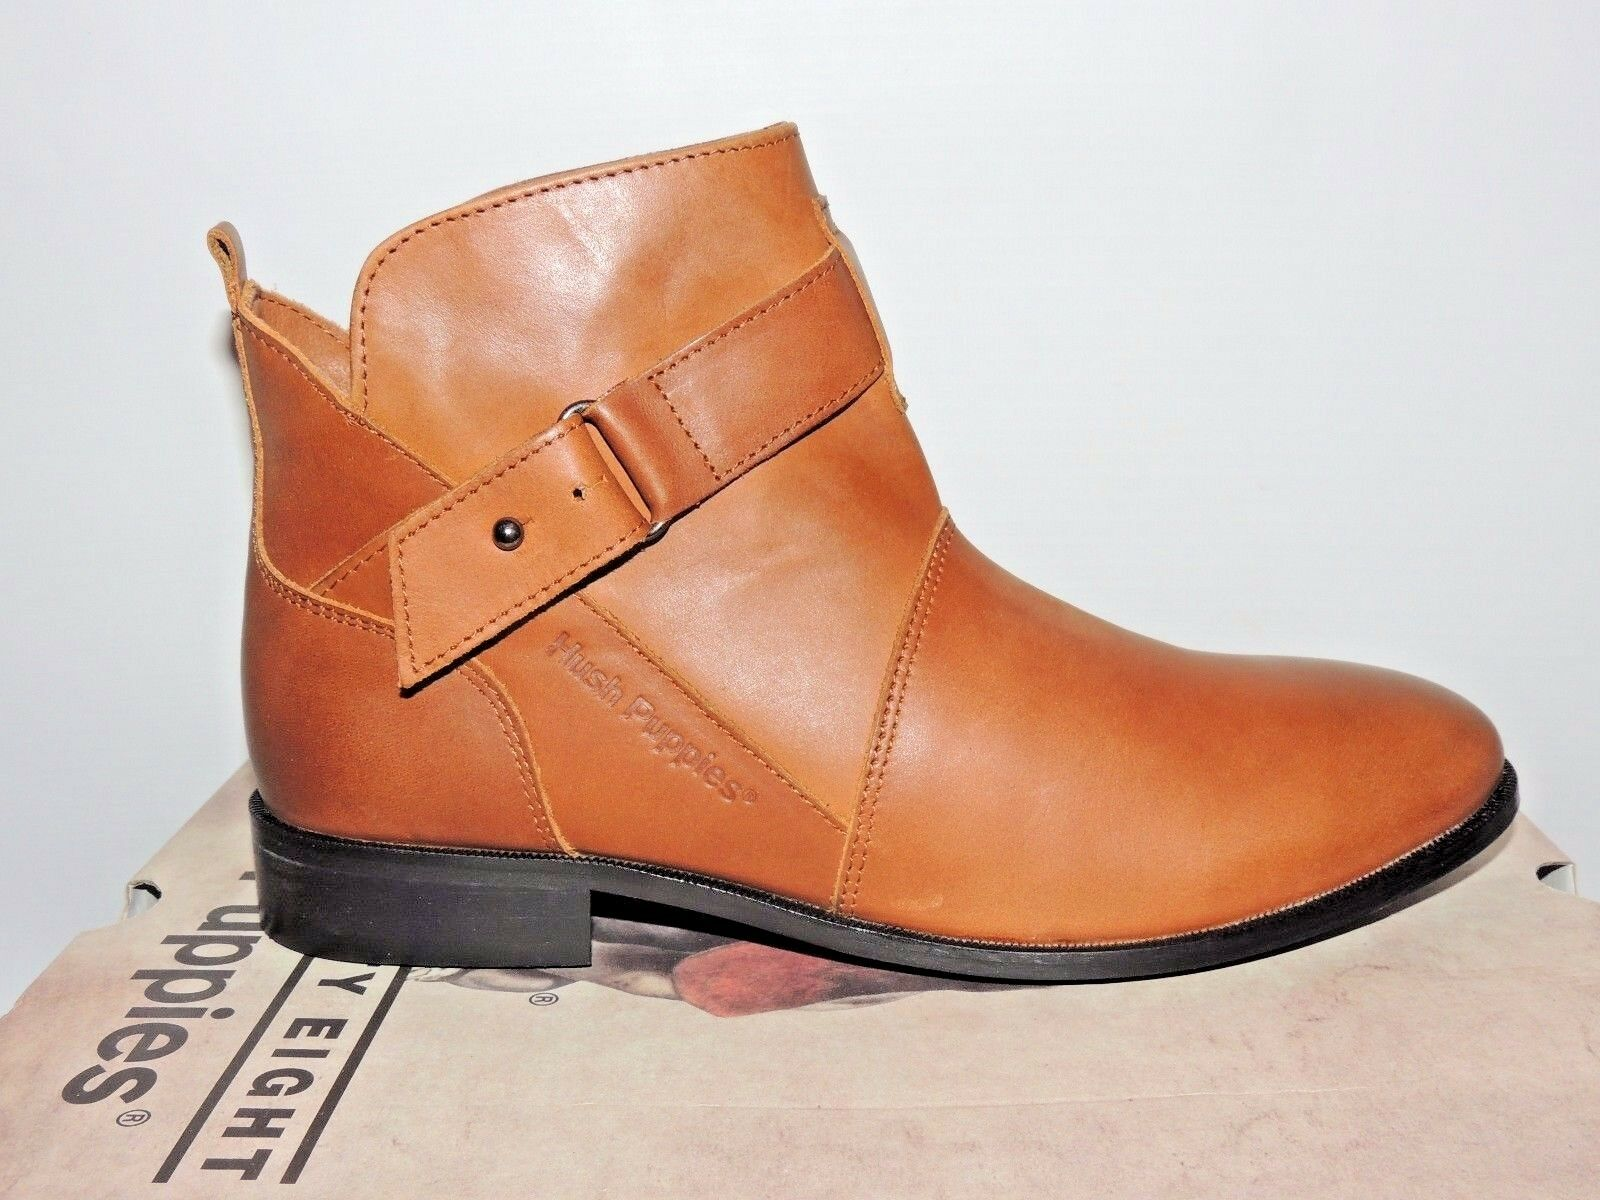 HUSH PUPPIES 'VITA'  TAN LEATHER ZIP UP ANKLE BOOTS. BNIB